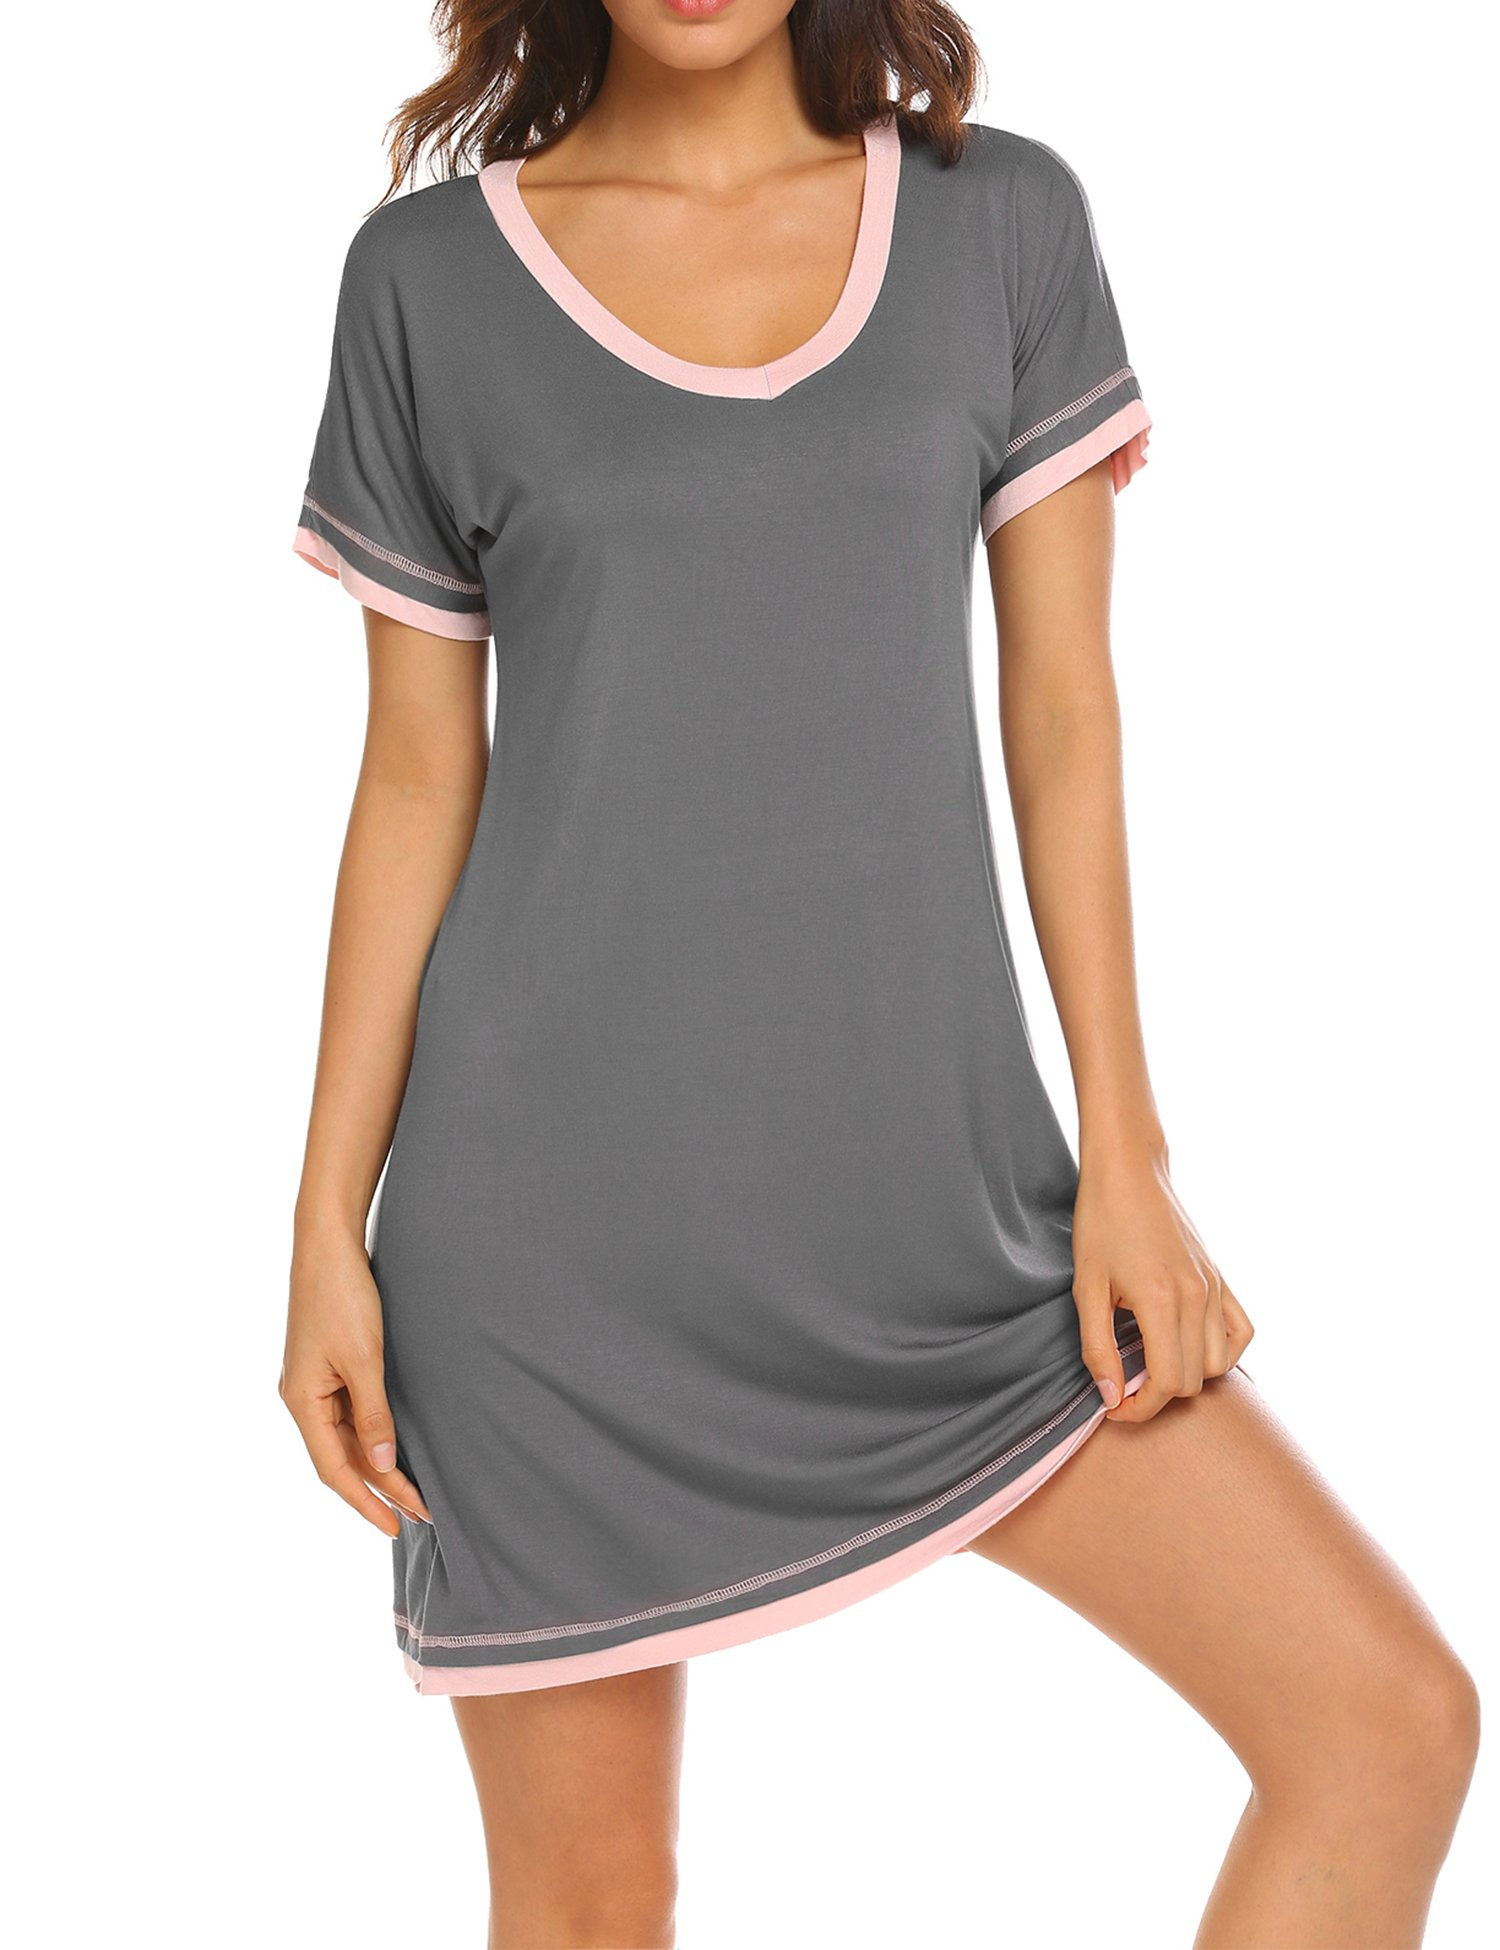 Dolay Sleep T Shirt Lady Cotton Knit Night Wear Gowns Pajama Dresses (Gray, Small)